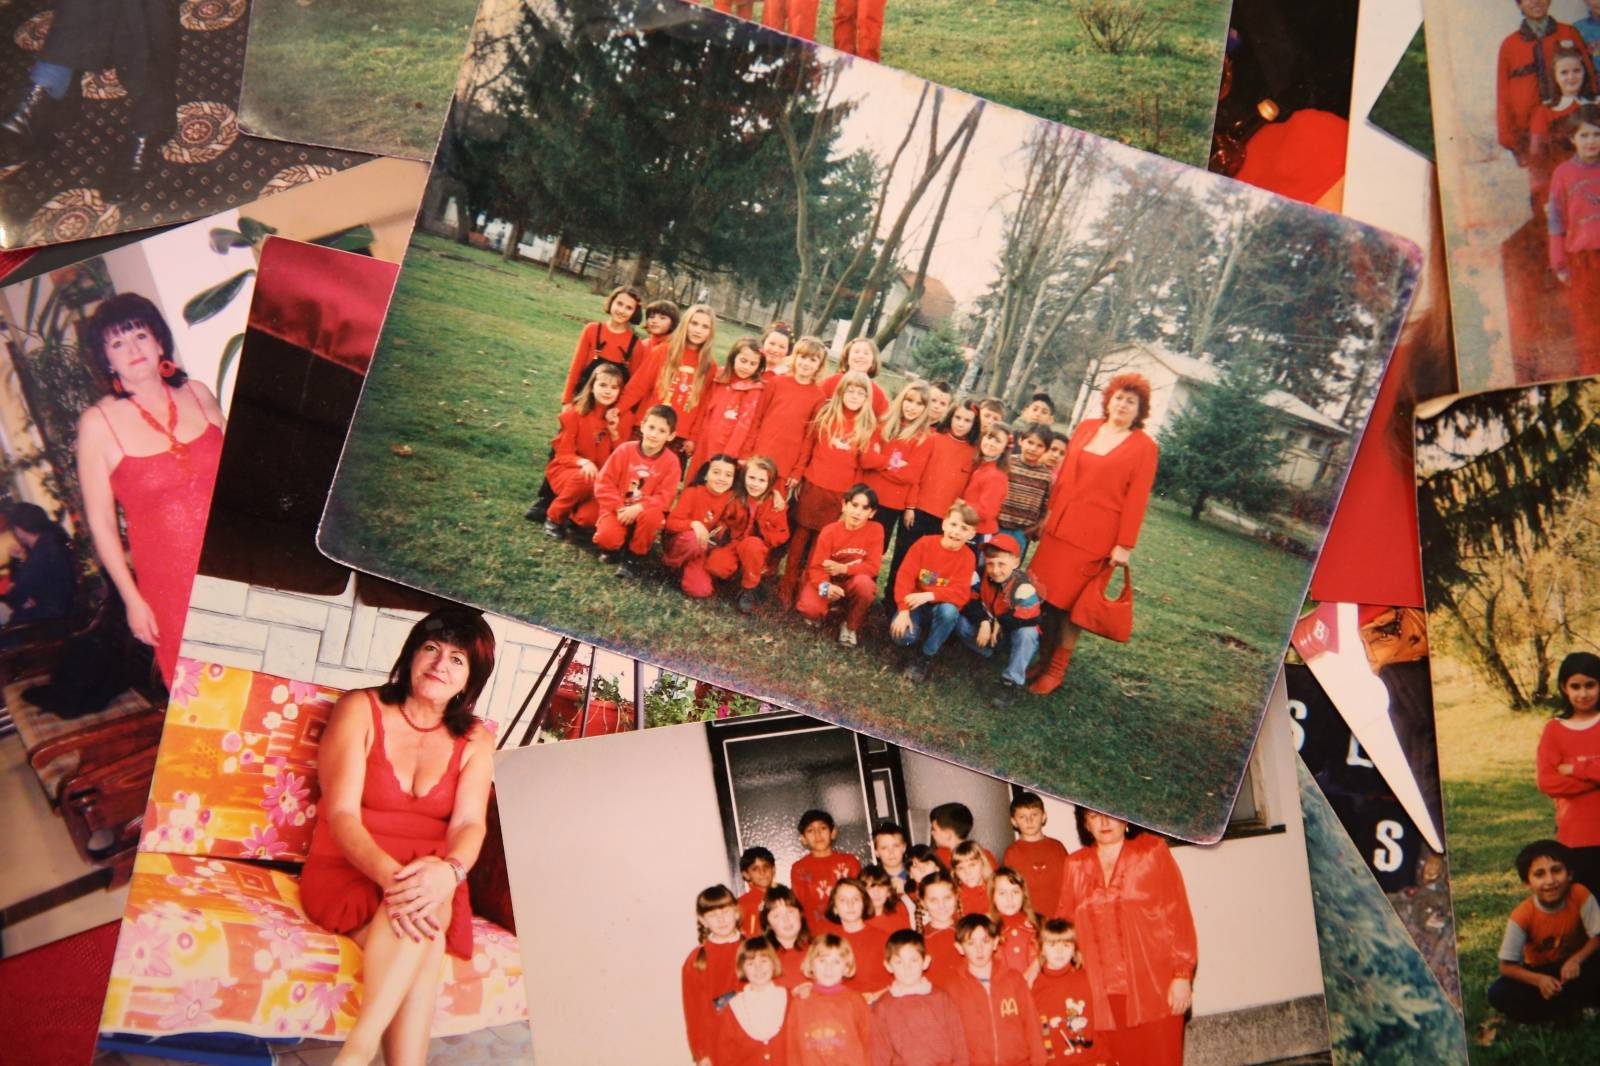 Zorica Rebernik's pictures, from the period when she was a teacher, are seen in her house in the village of Breze near Tuzla